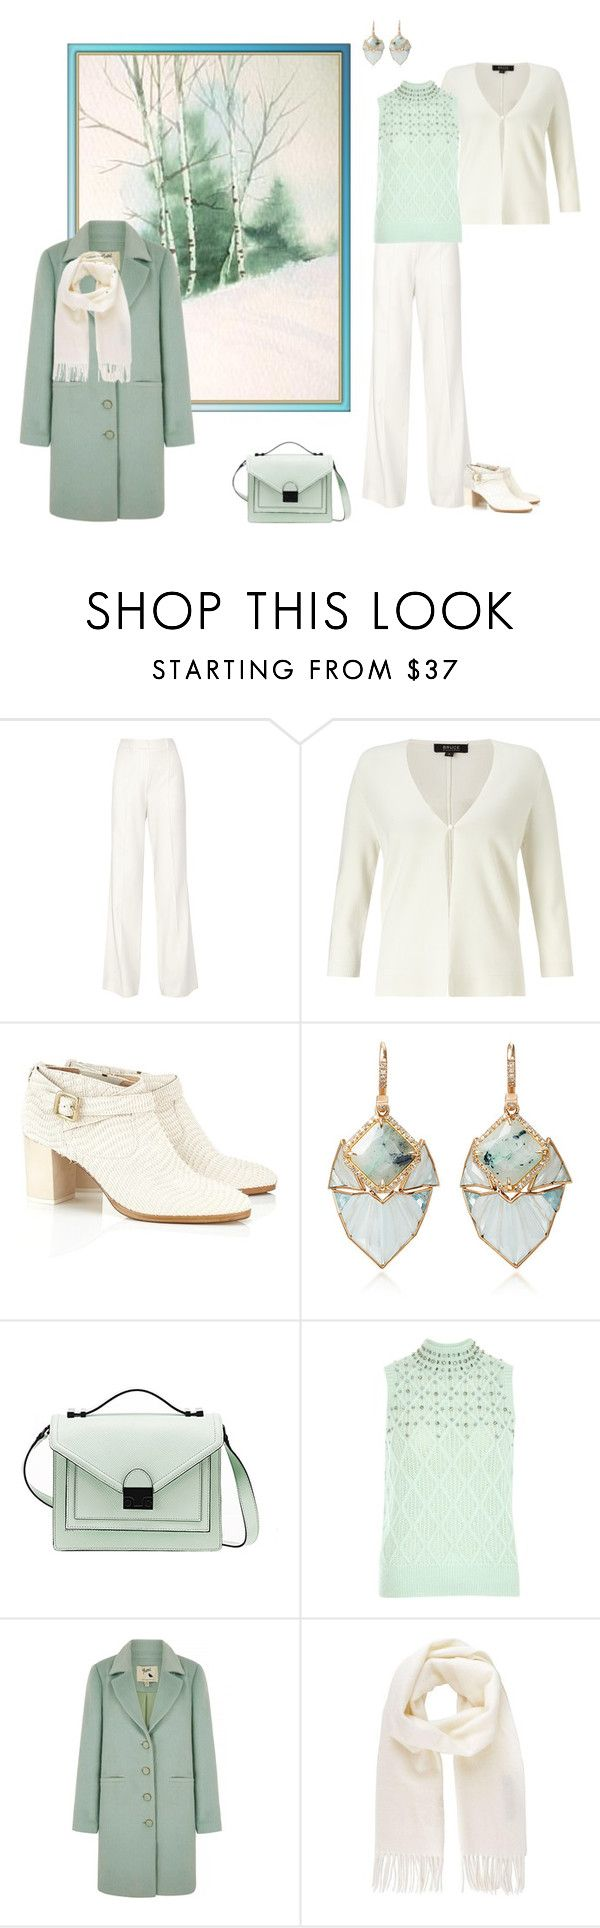 """""""Untitled #1289"""" by milliemarie ❤ liked on Polyvore featuring ADAM, Zoe Lee, Nak Armstrong, Loeffler Randall, River Island, Yumi and Vivienne Westwood"""